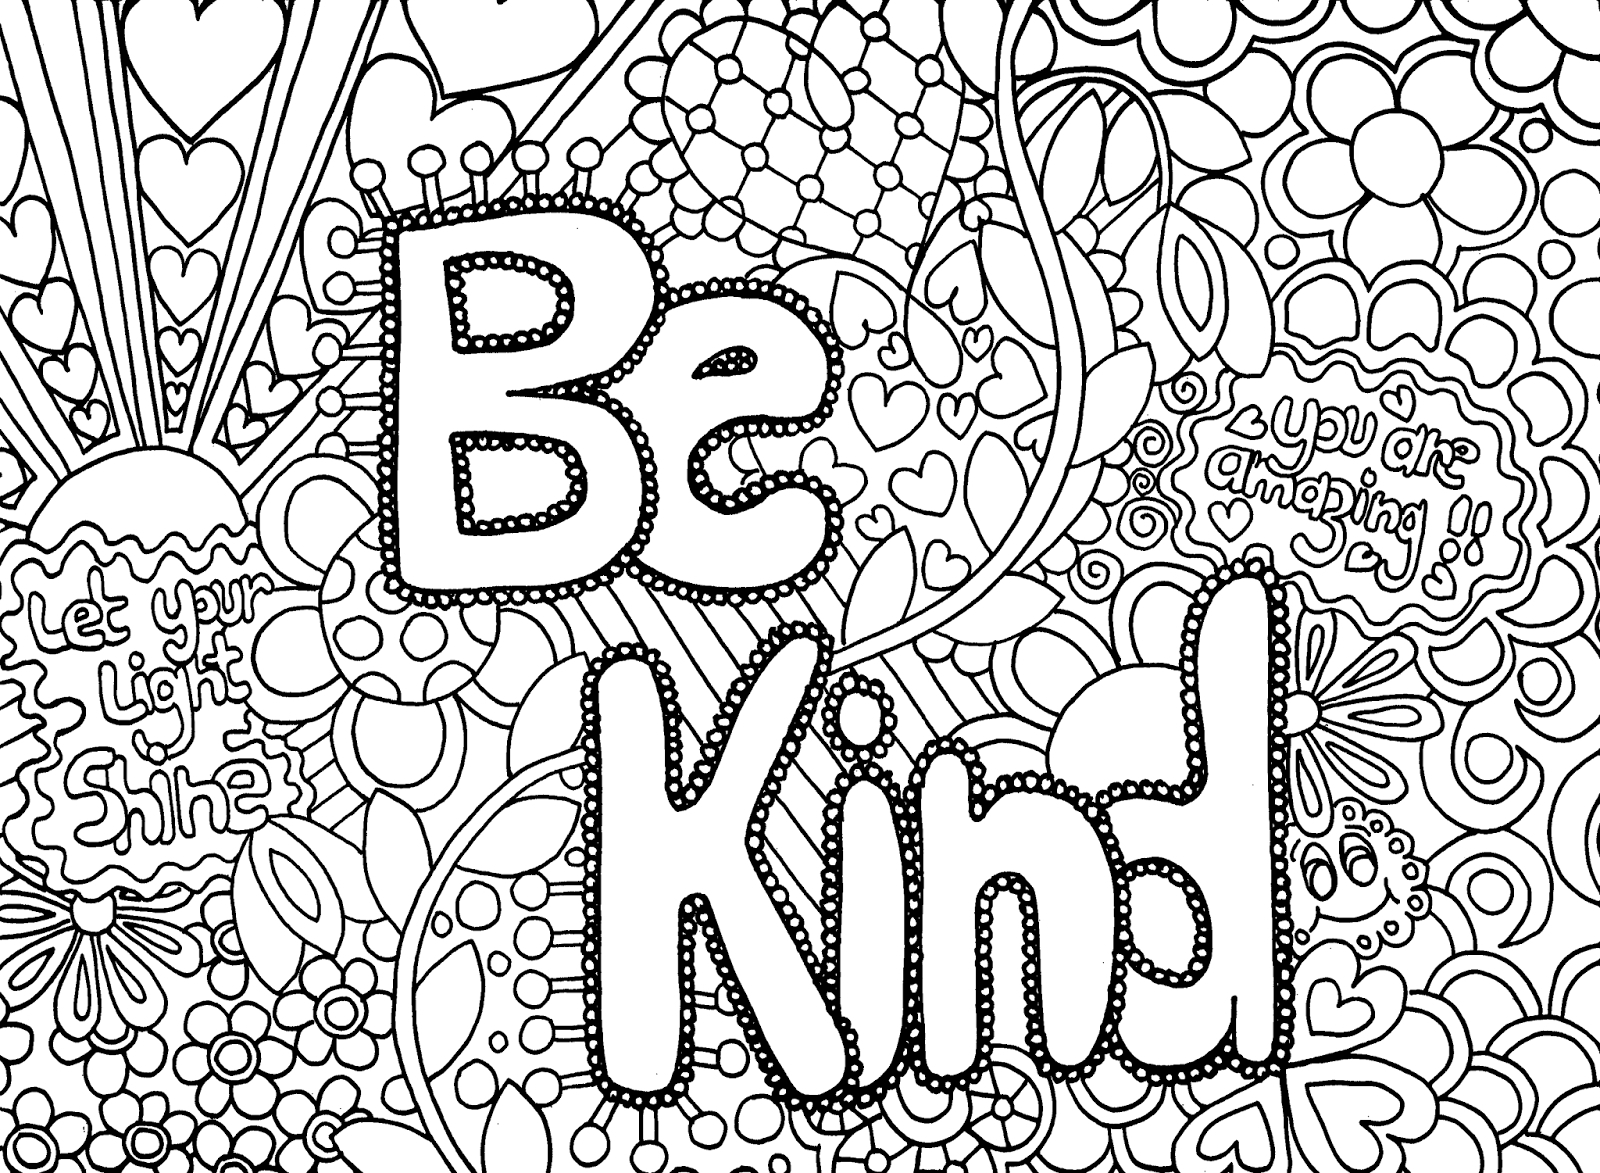 Fresh Inspirational Coloring Pages for Adults Line and Studynow to Print Of Fresh Inspirational Coloring Pages for Adults Line and Studynow to Print